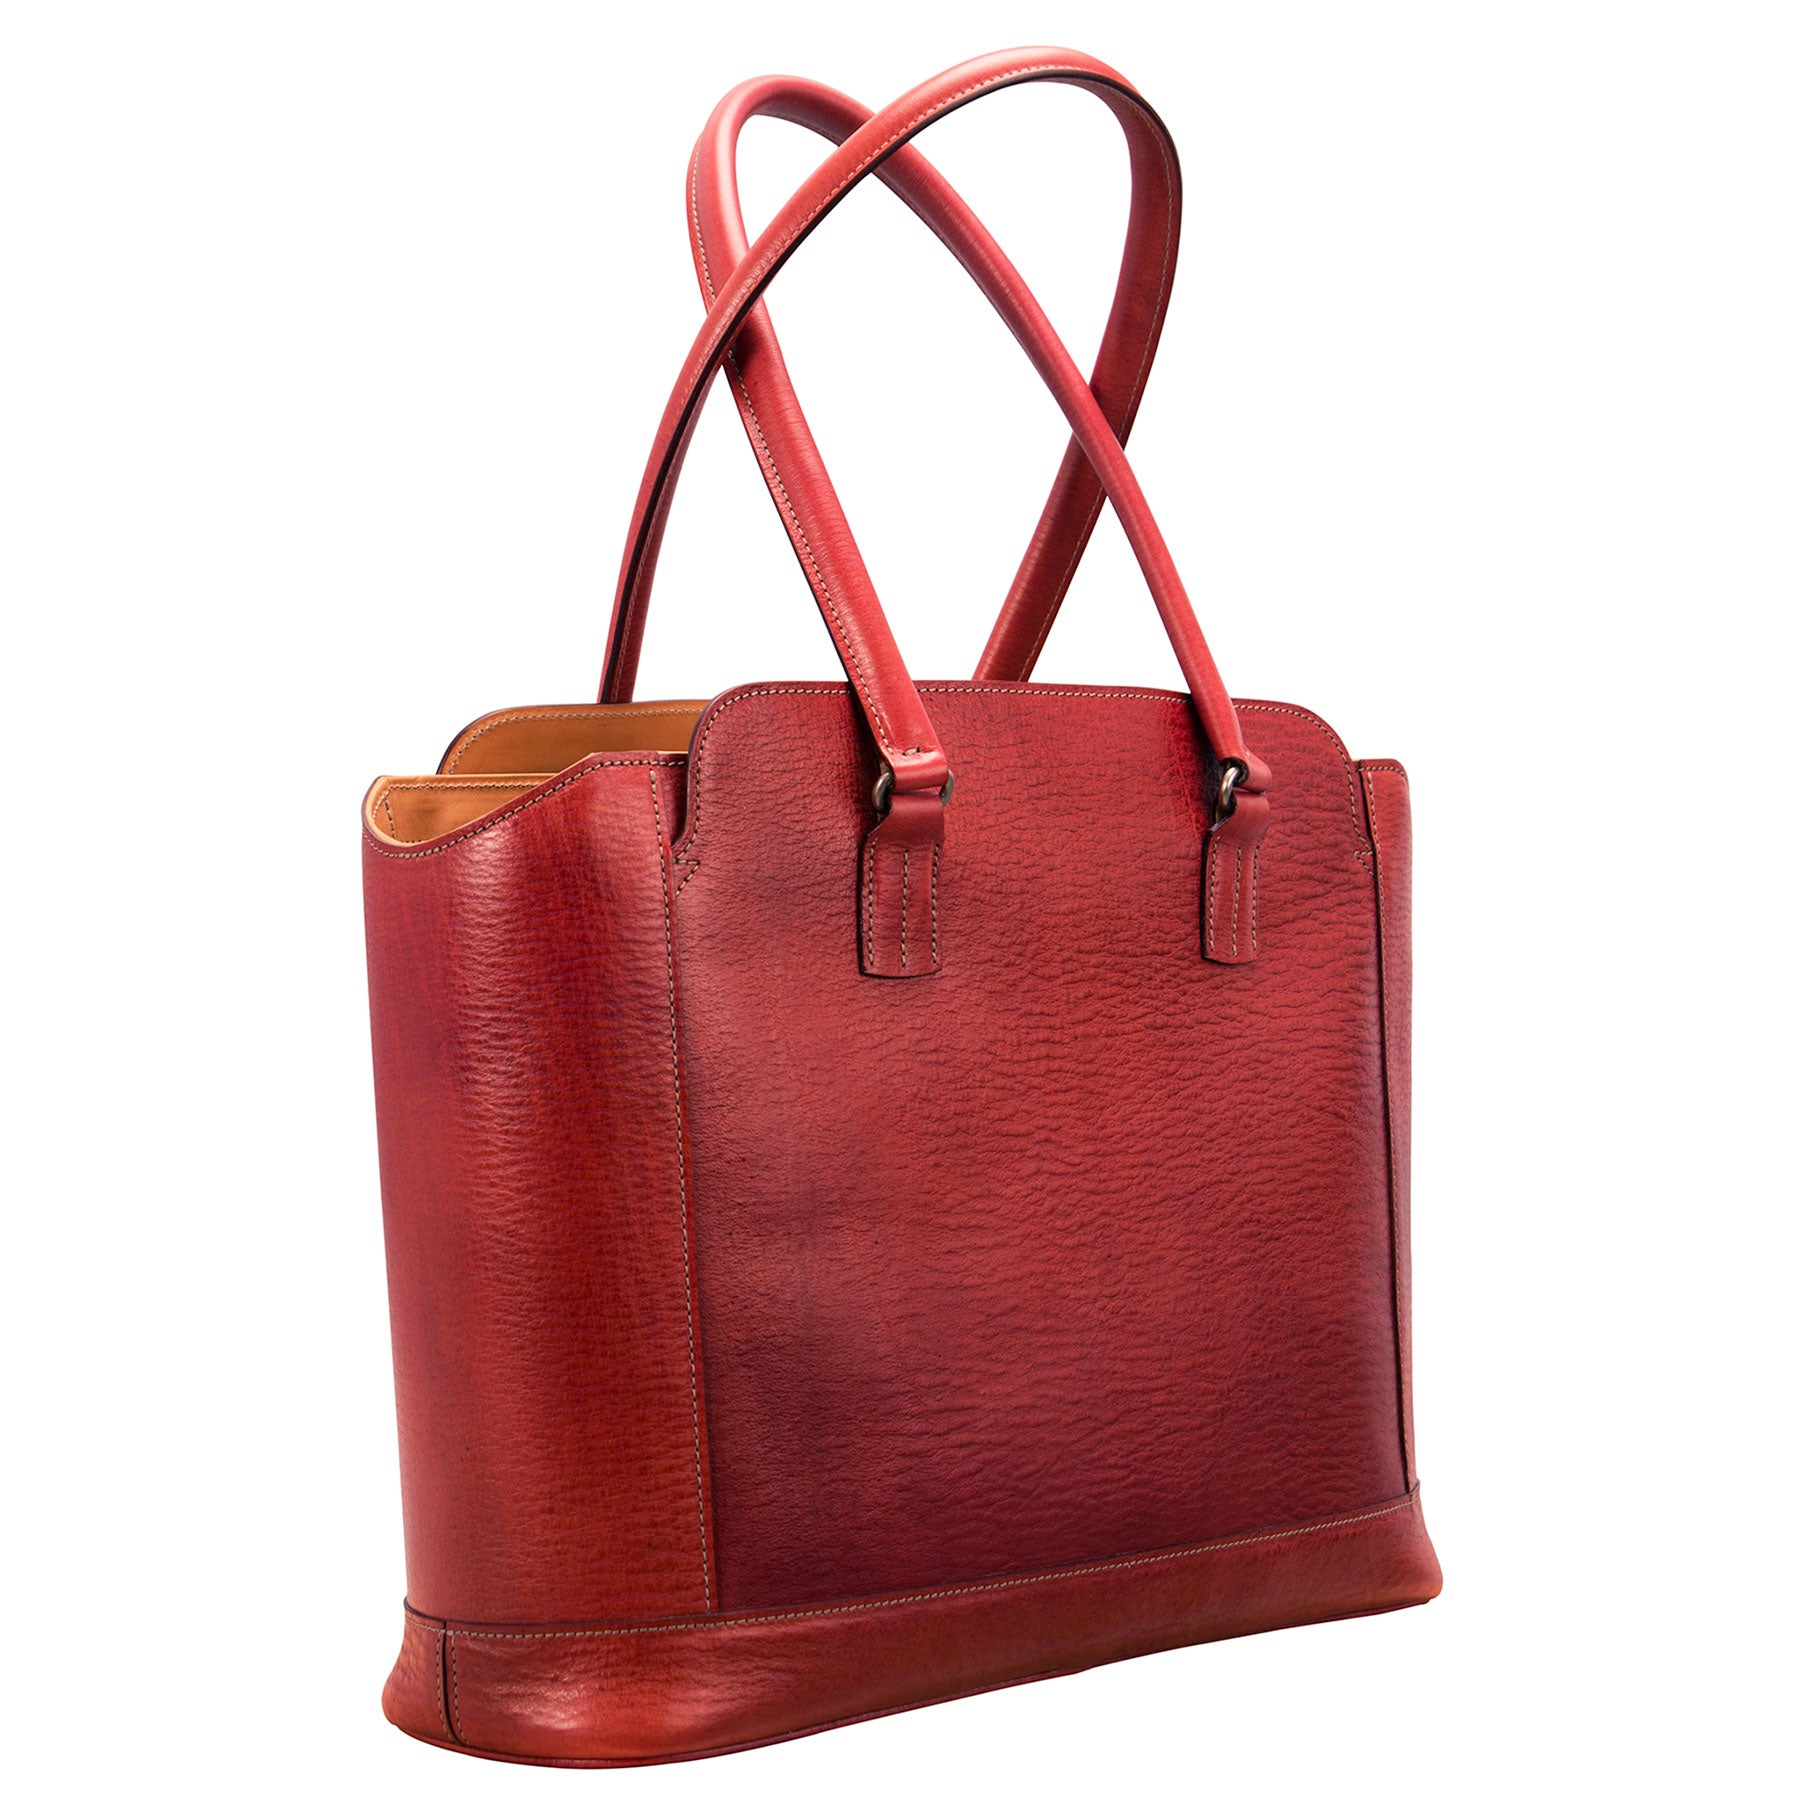 Glaser Designs City Tote with Long Handles. Hand colored Barn Red vegetable tanned leather. Solid brass hardware. Made to measure, custom sizes.